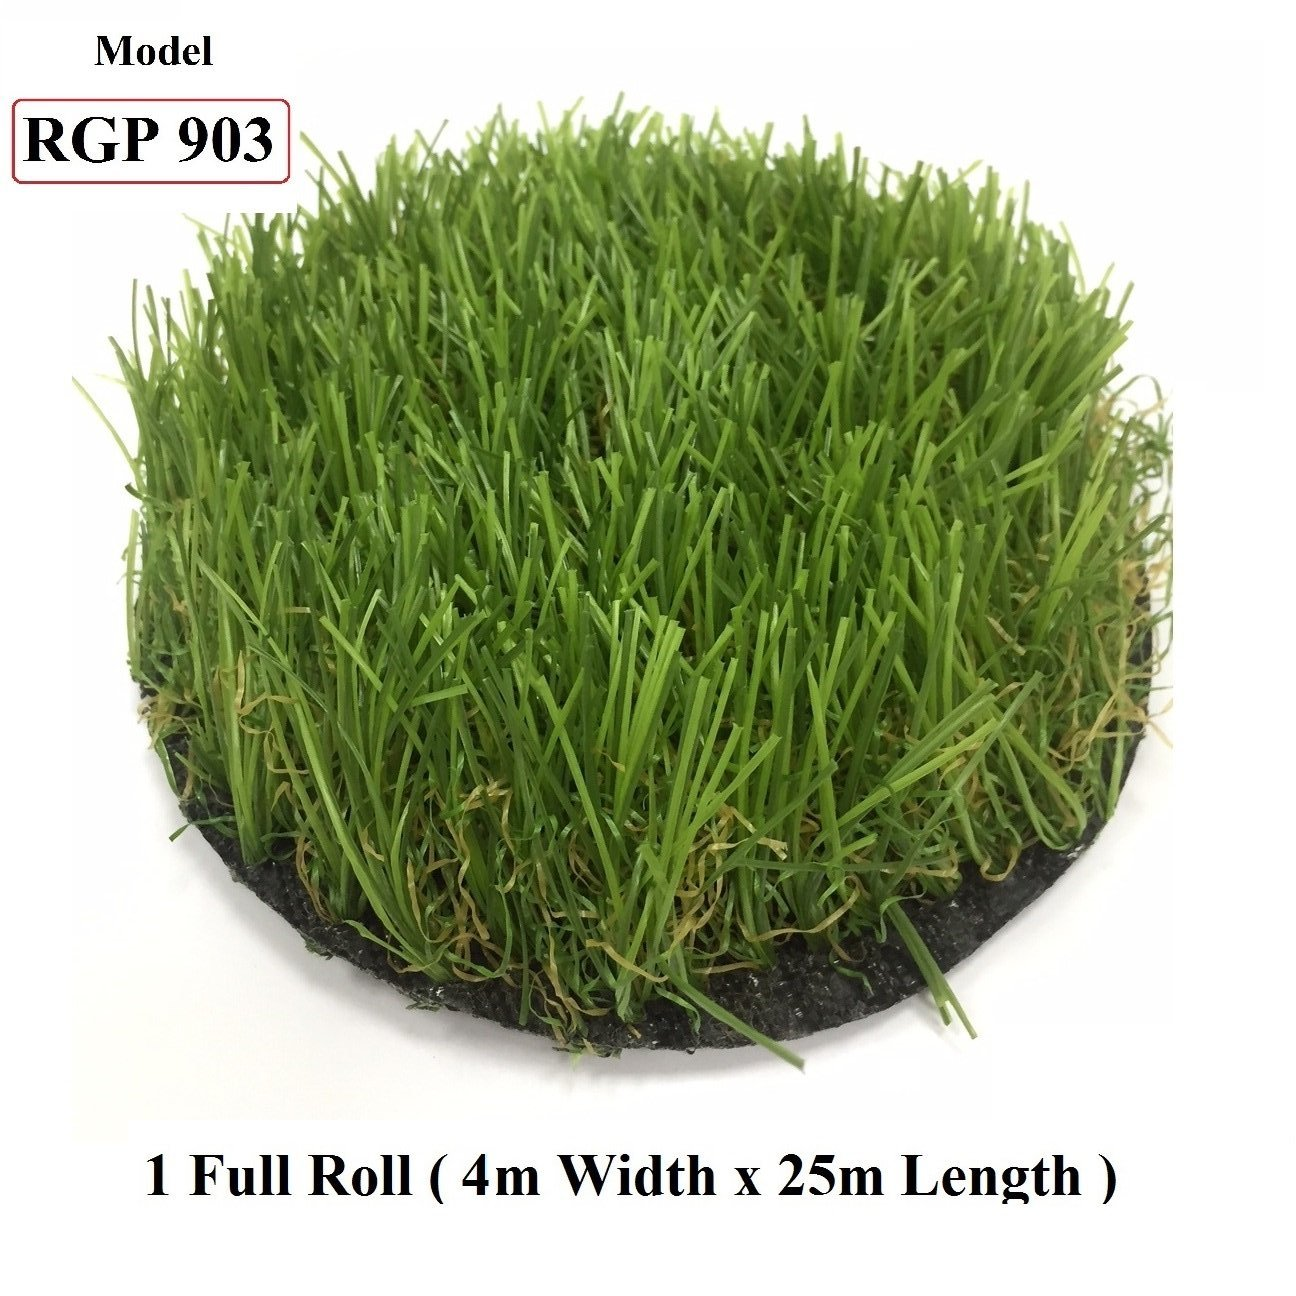 ResiGrass Artificial Grass RGP903 - 40mm - 4m (W) x 25m (L), SmartGardenCenter.com